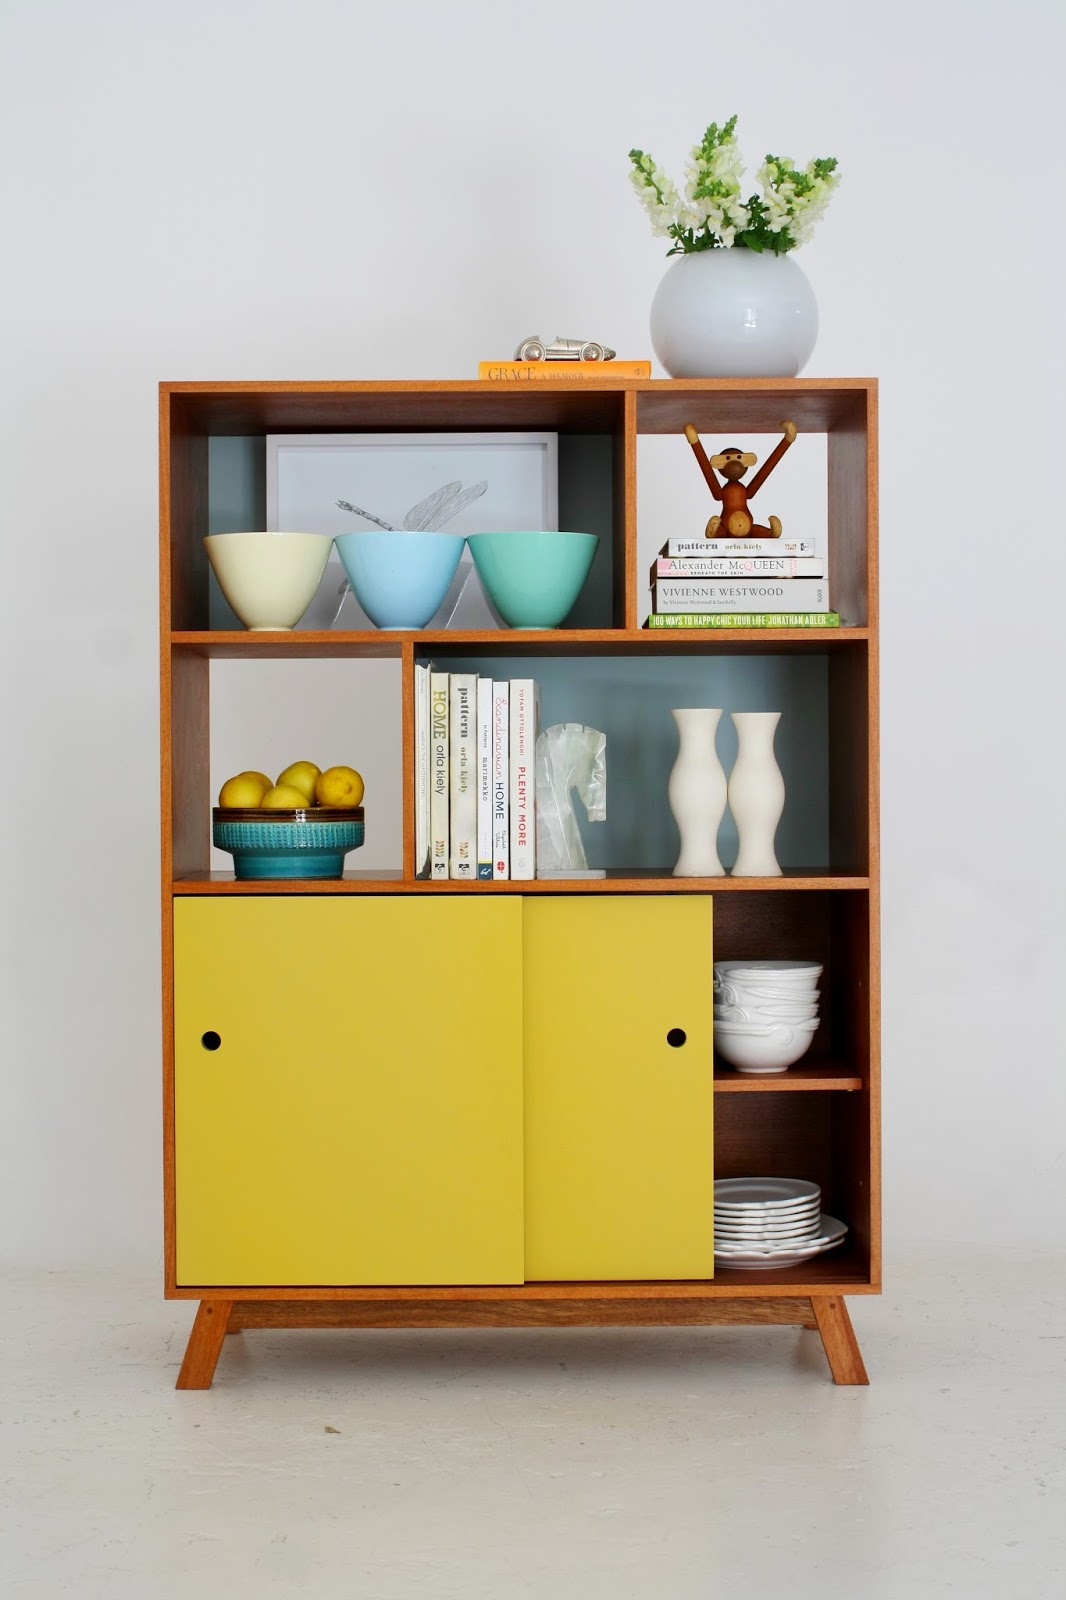 VAMP FURNITURE: Tina Wall Unit made by Vamp